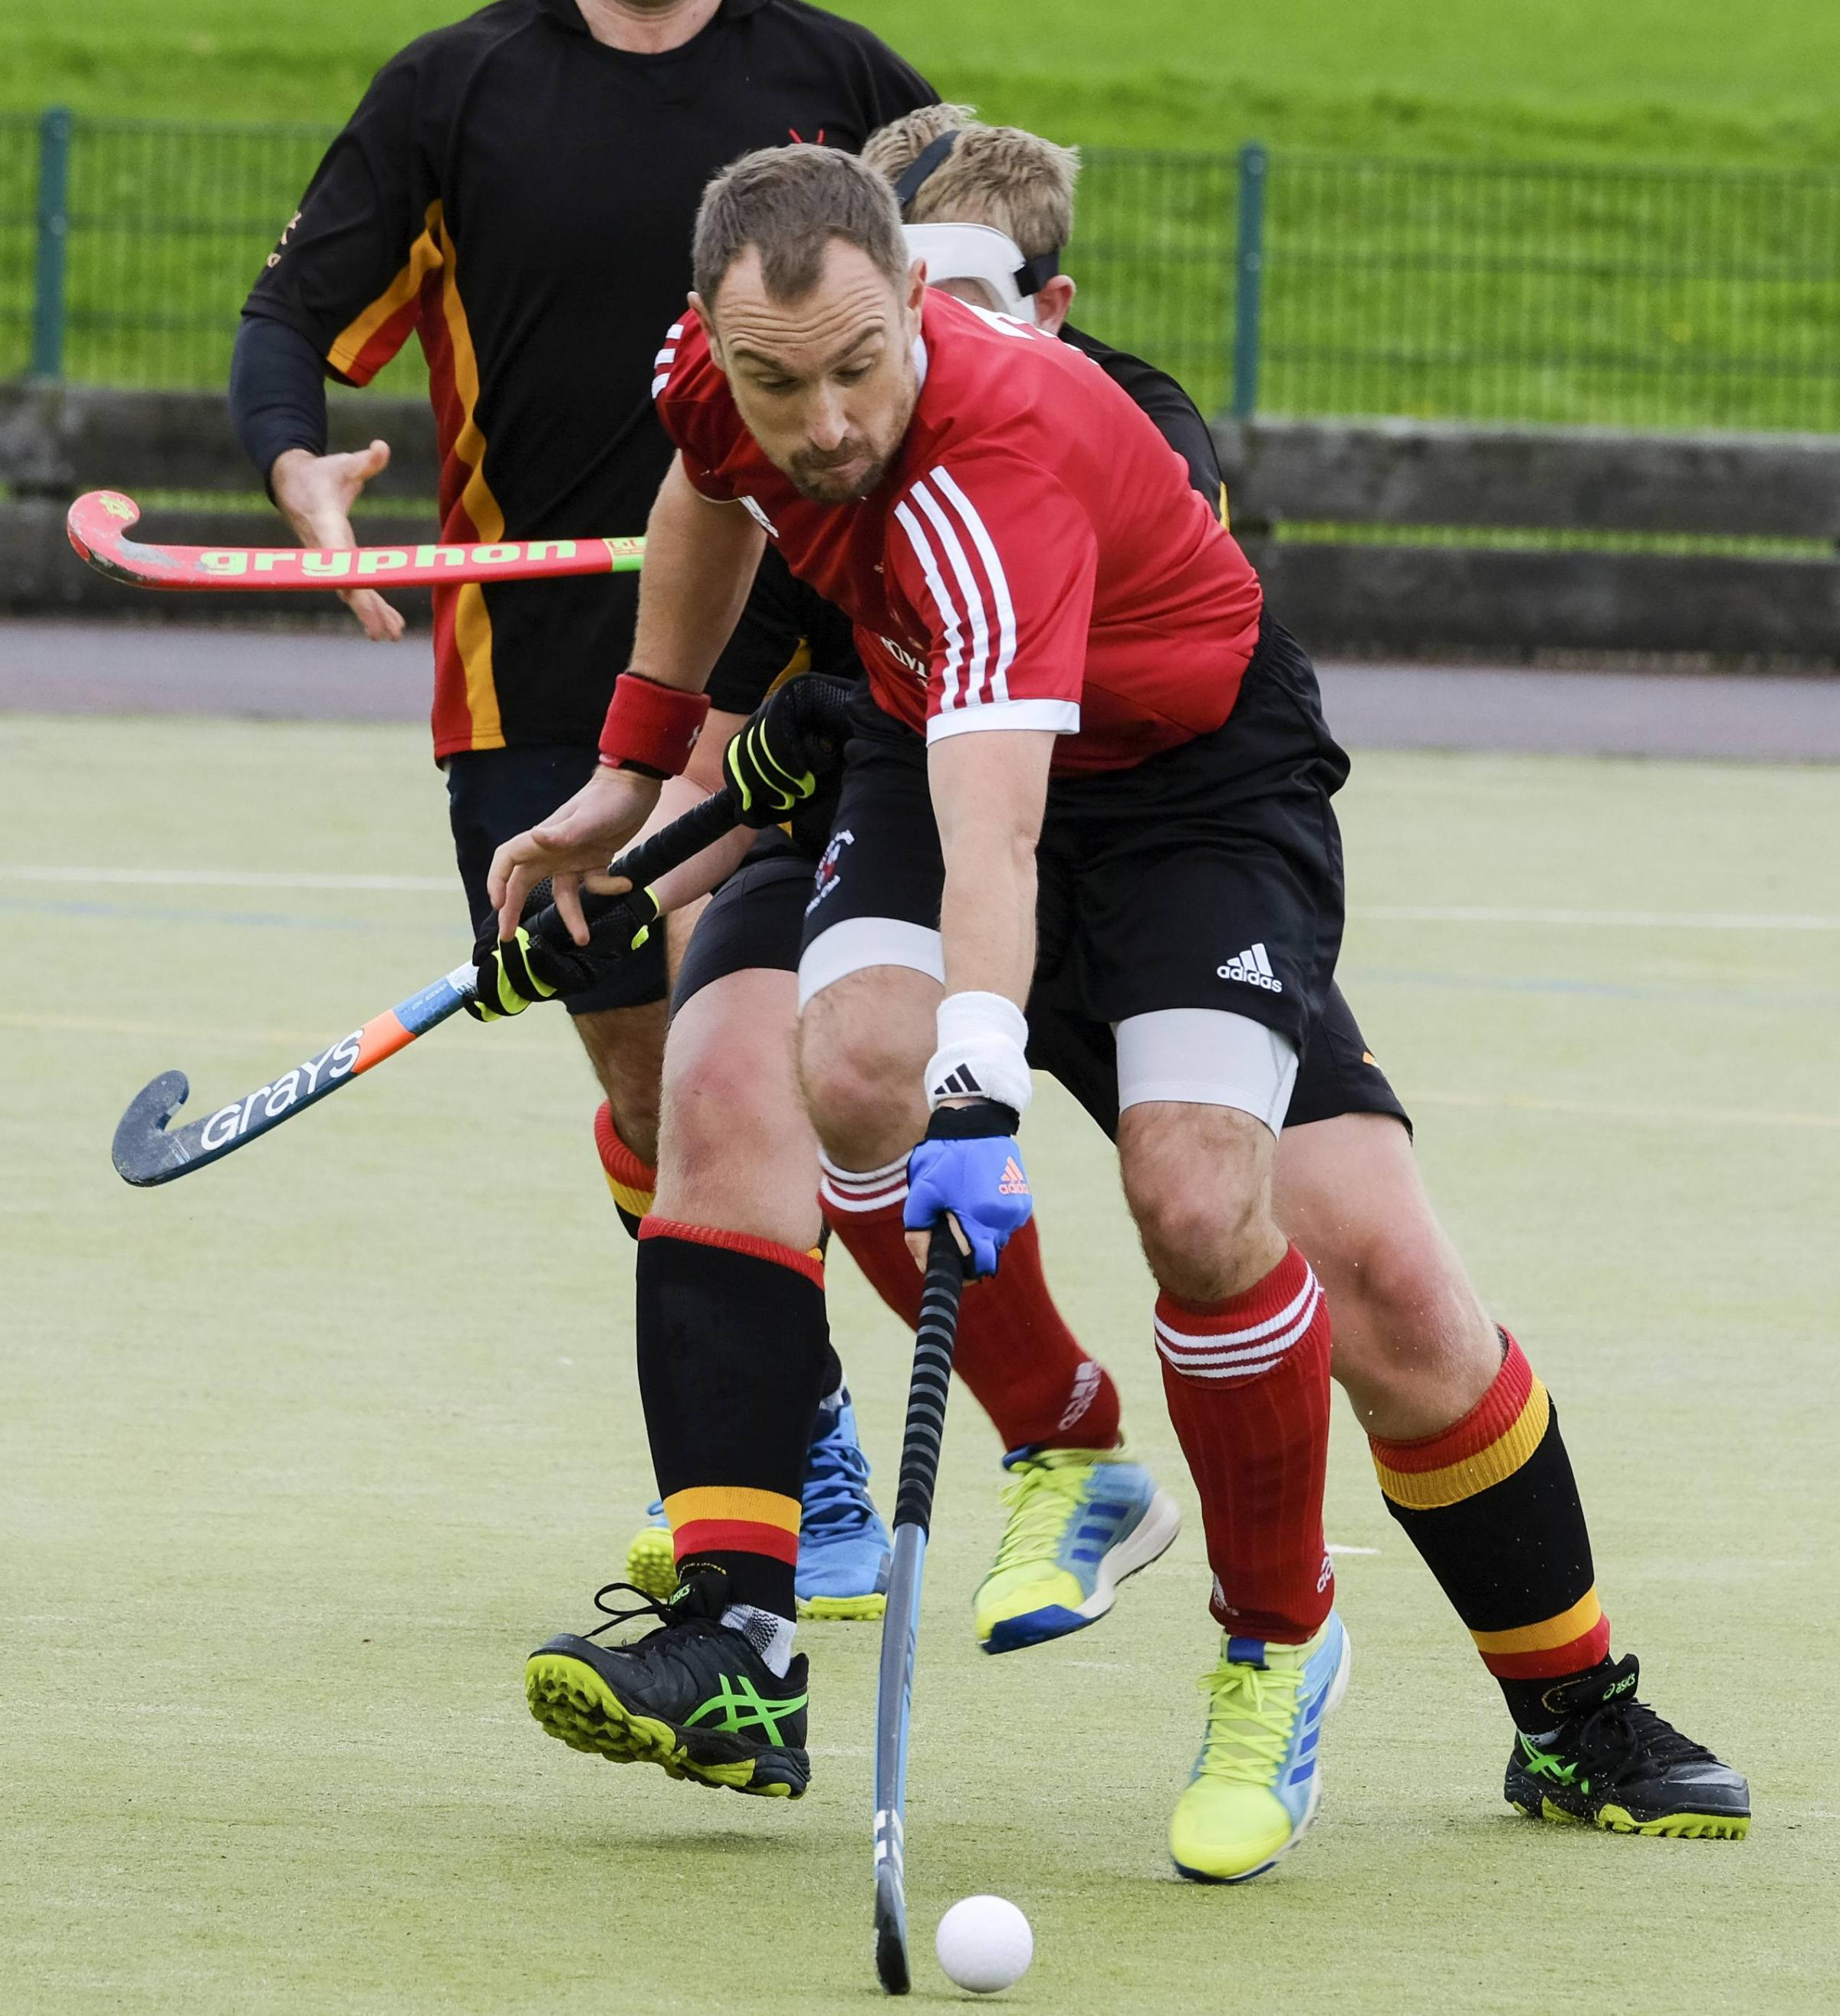 SPORT. South Lakes Hockey Mens 1st team. Ghosting through the Kirkby defence is S. Olliver. 14th October 2017. PICTURES; MILTON HAWORTH.